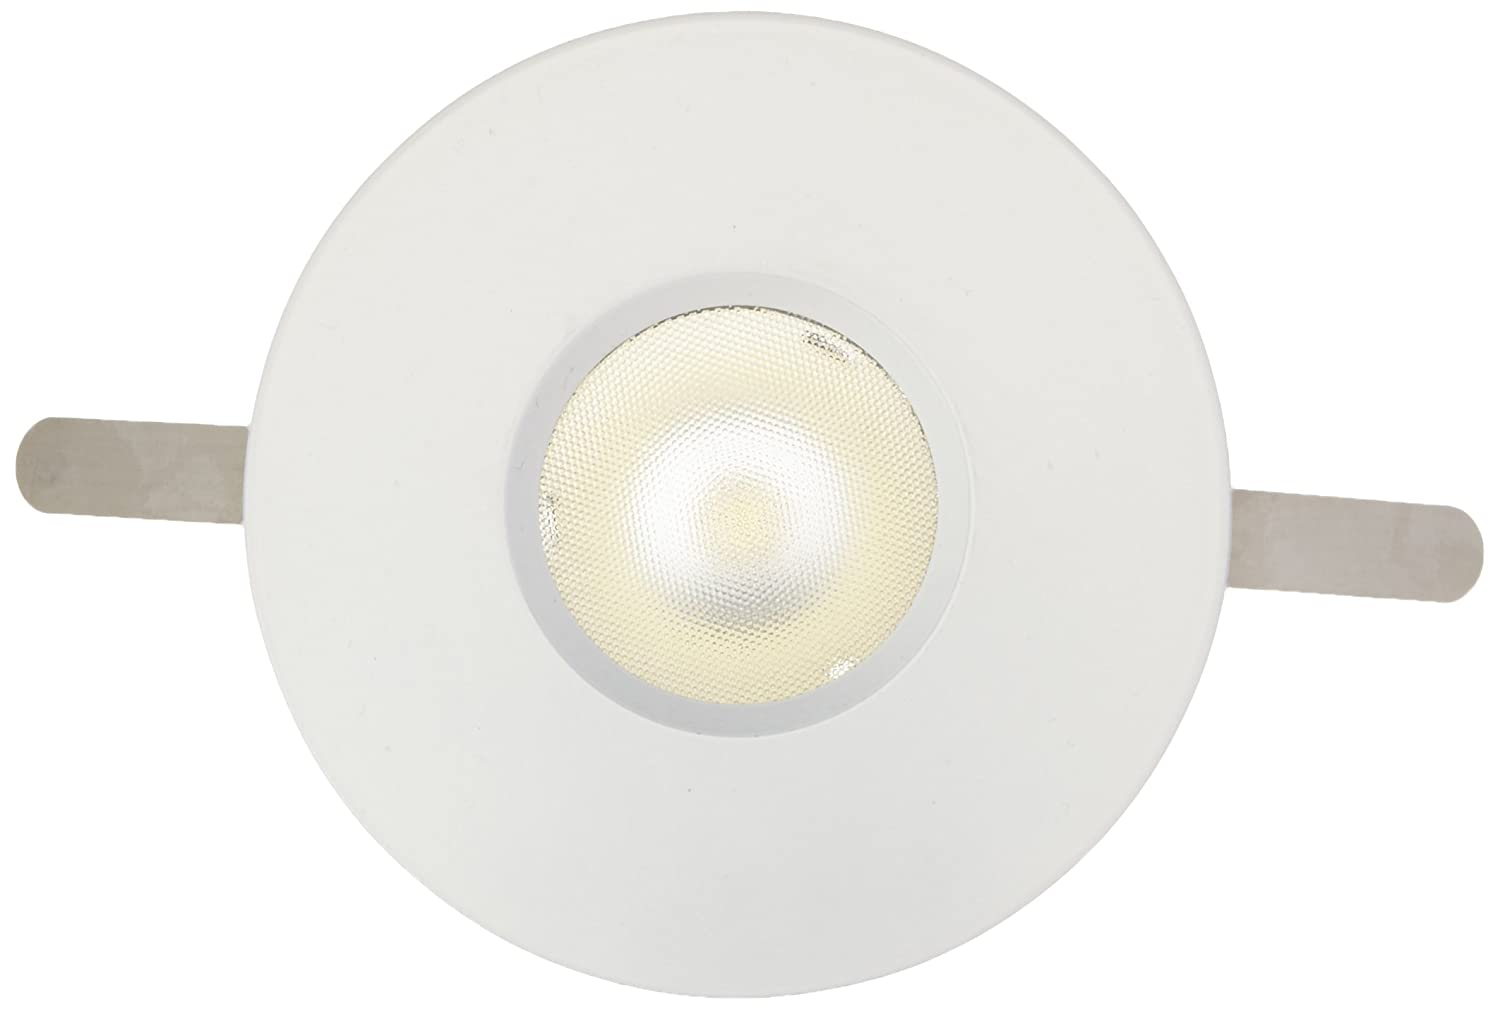 WAC Lighting HR-2LD-ET109S-35WT Tesla Energy Star Qualified 2-Inch Tesla Downlights with 16.5-Degree Beam Angle and Cool 3500K